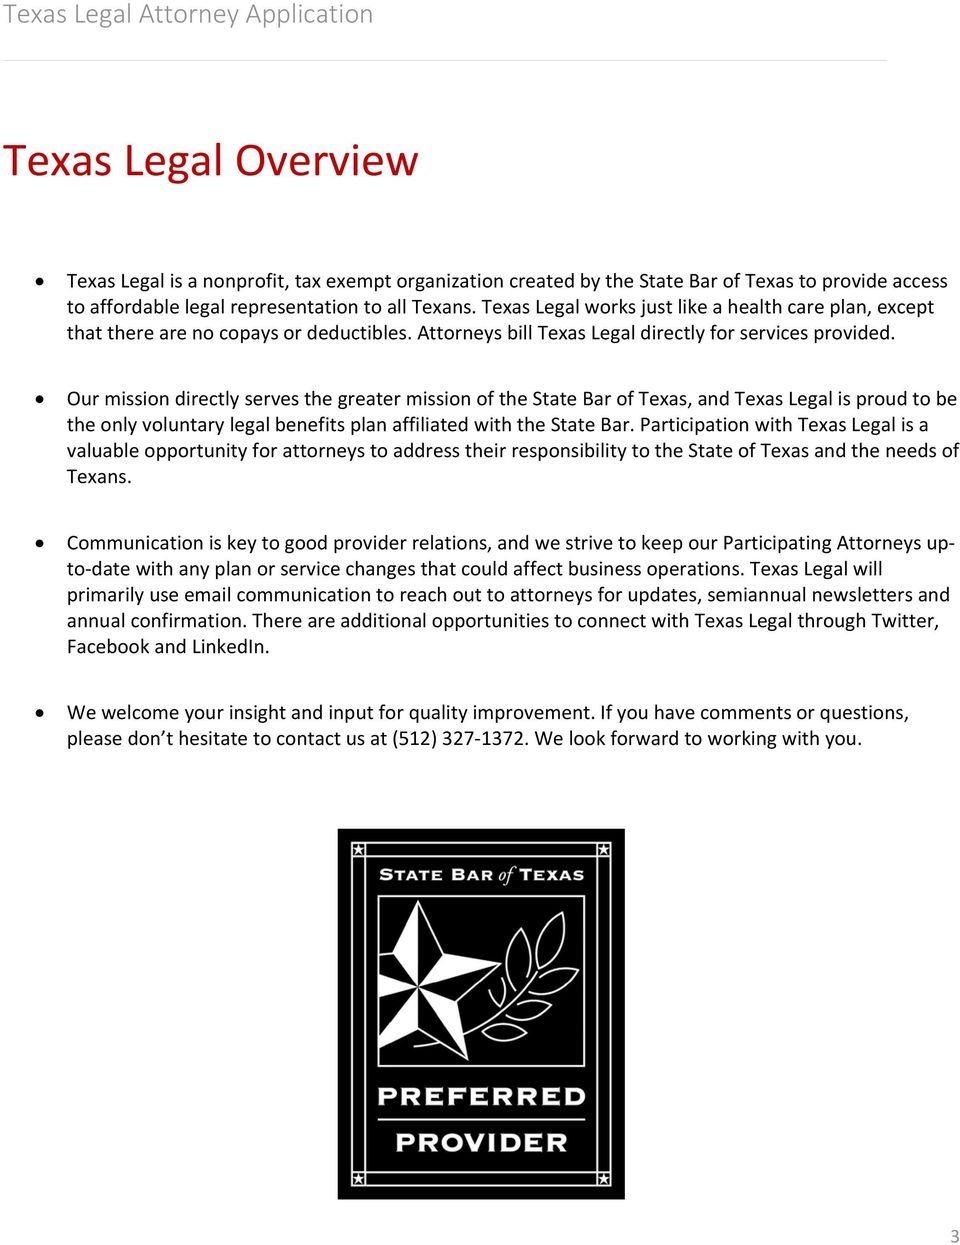 Our mission directly serves the greater mission of the State Bar of Texas, and Texas Legal is proud to be the only voluntary legal benefits plan affiliated with the State Bar.